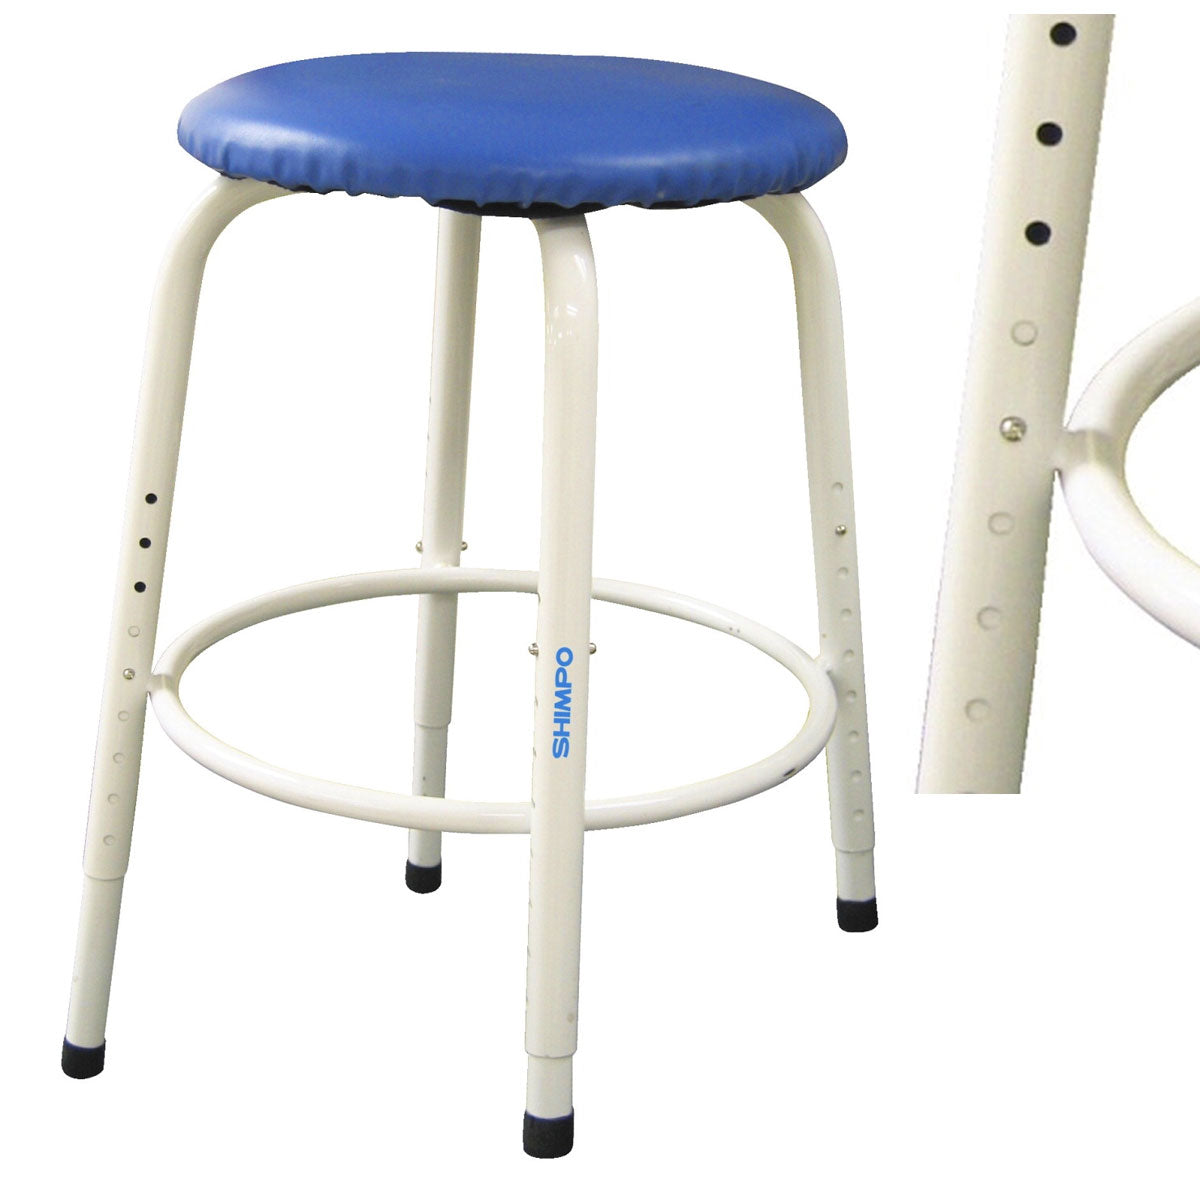 Shimpo Adjustable Potter's Stool